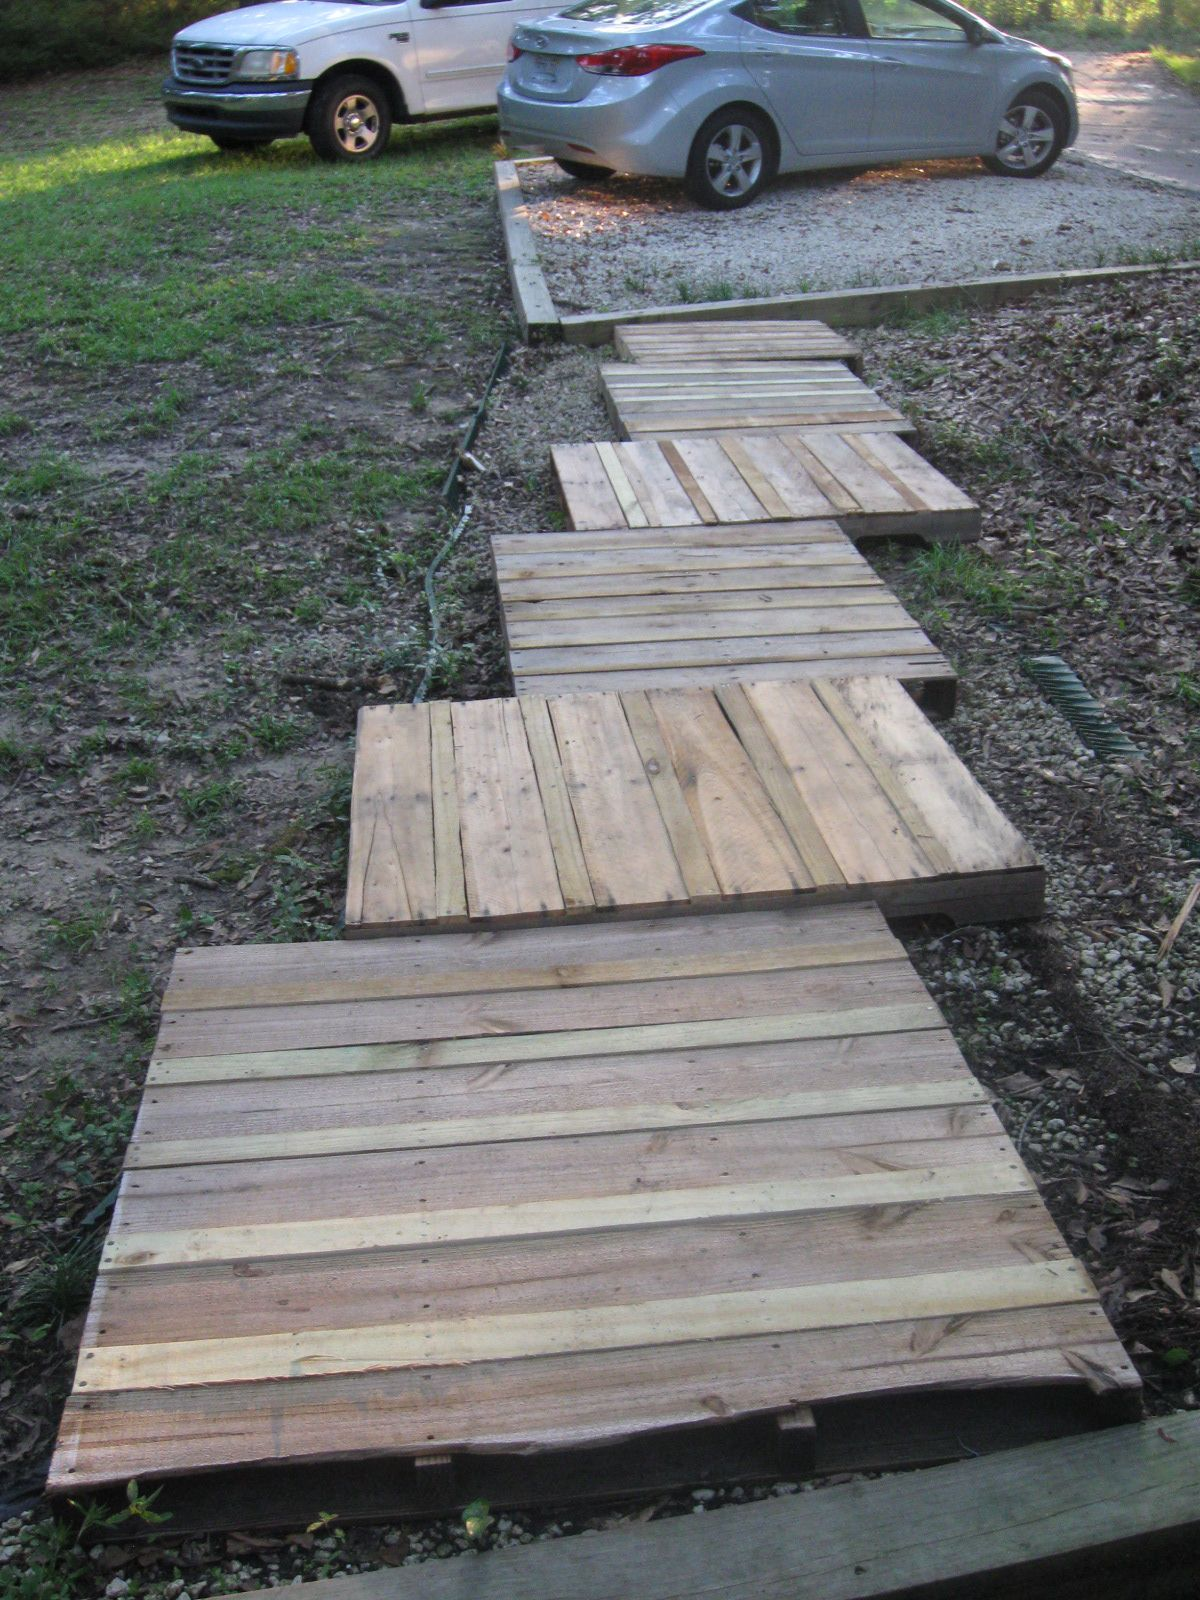 Wood Pallet Walkway I Cut Out Extra Wood Strips To Fill In The Spaces With  Fencing